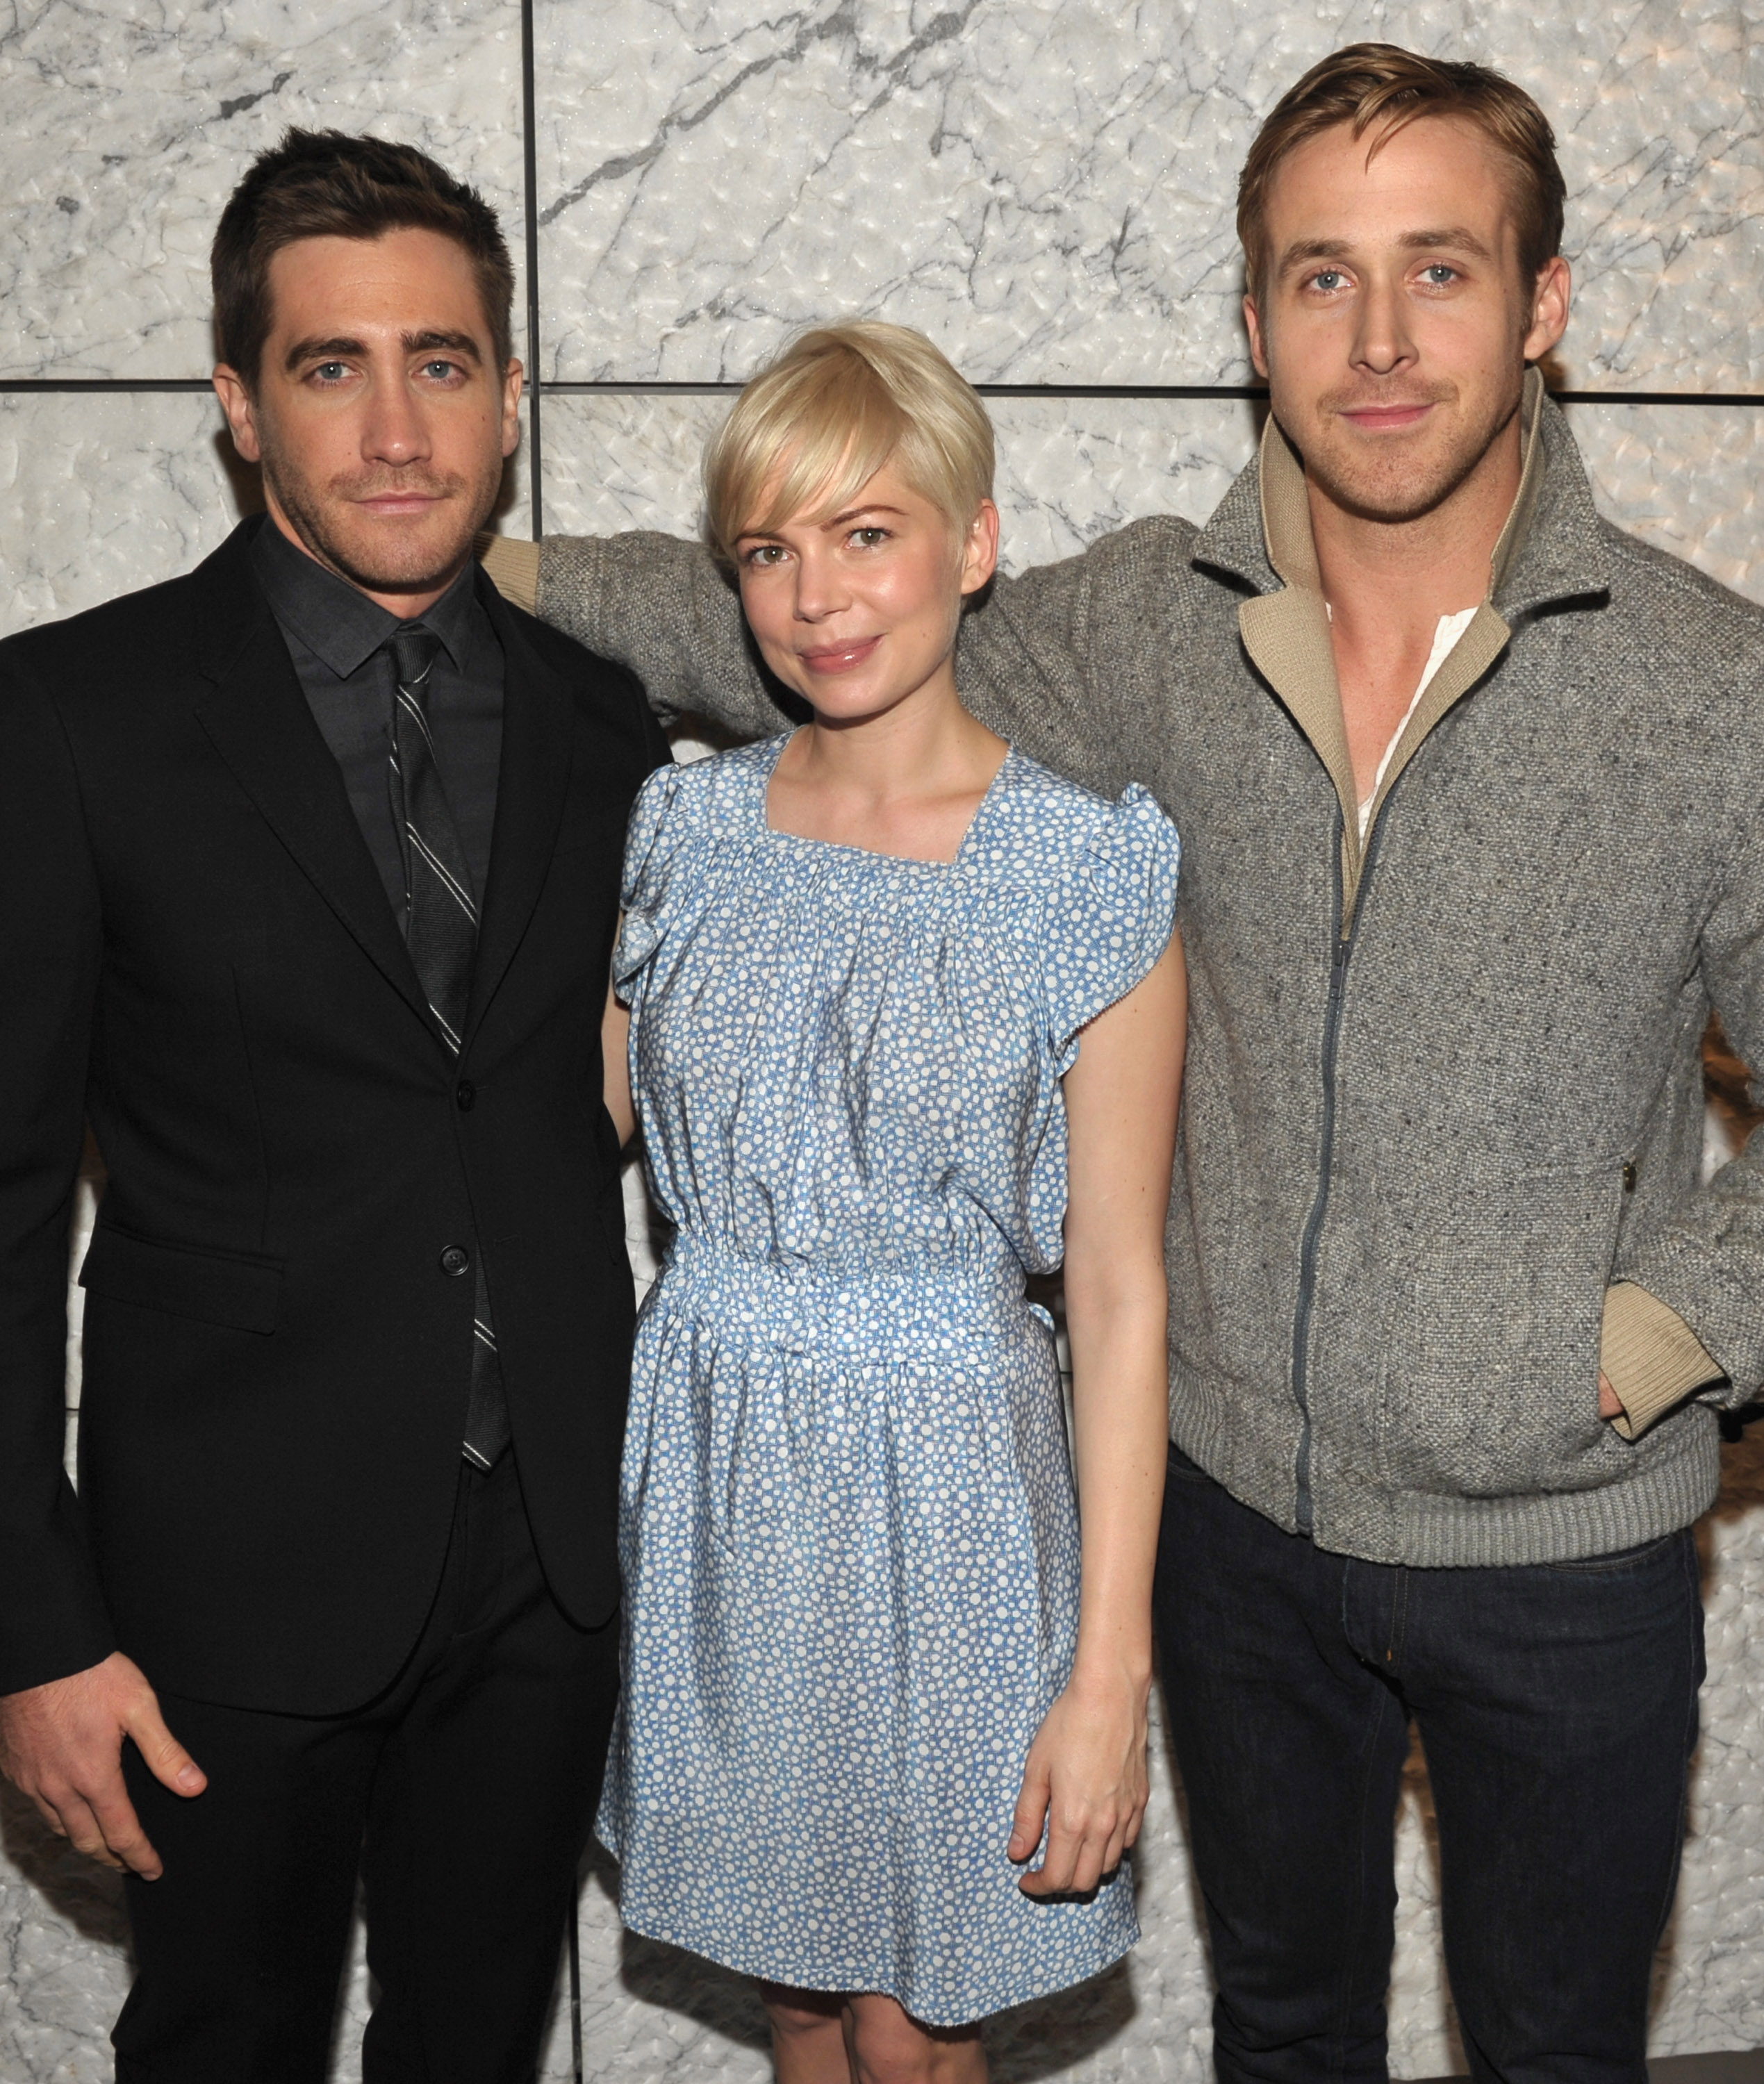 ImageJake Gyllenhaal And Michelle Williams